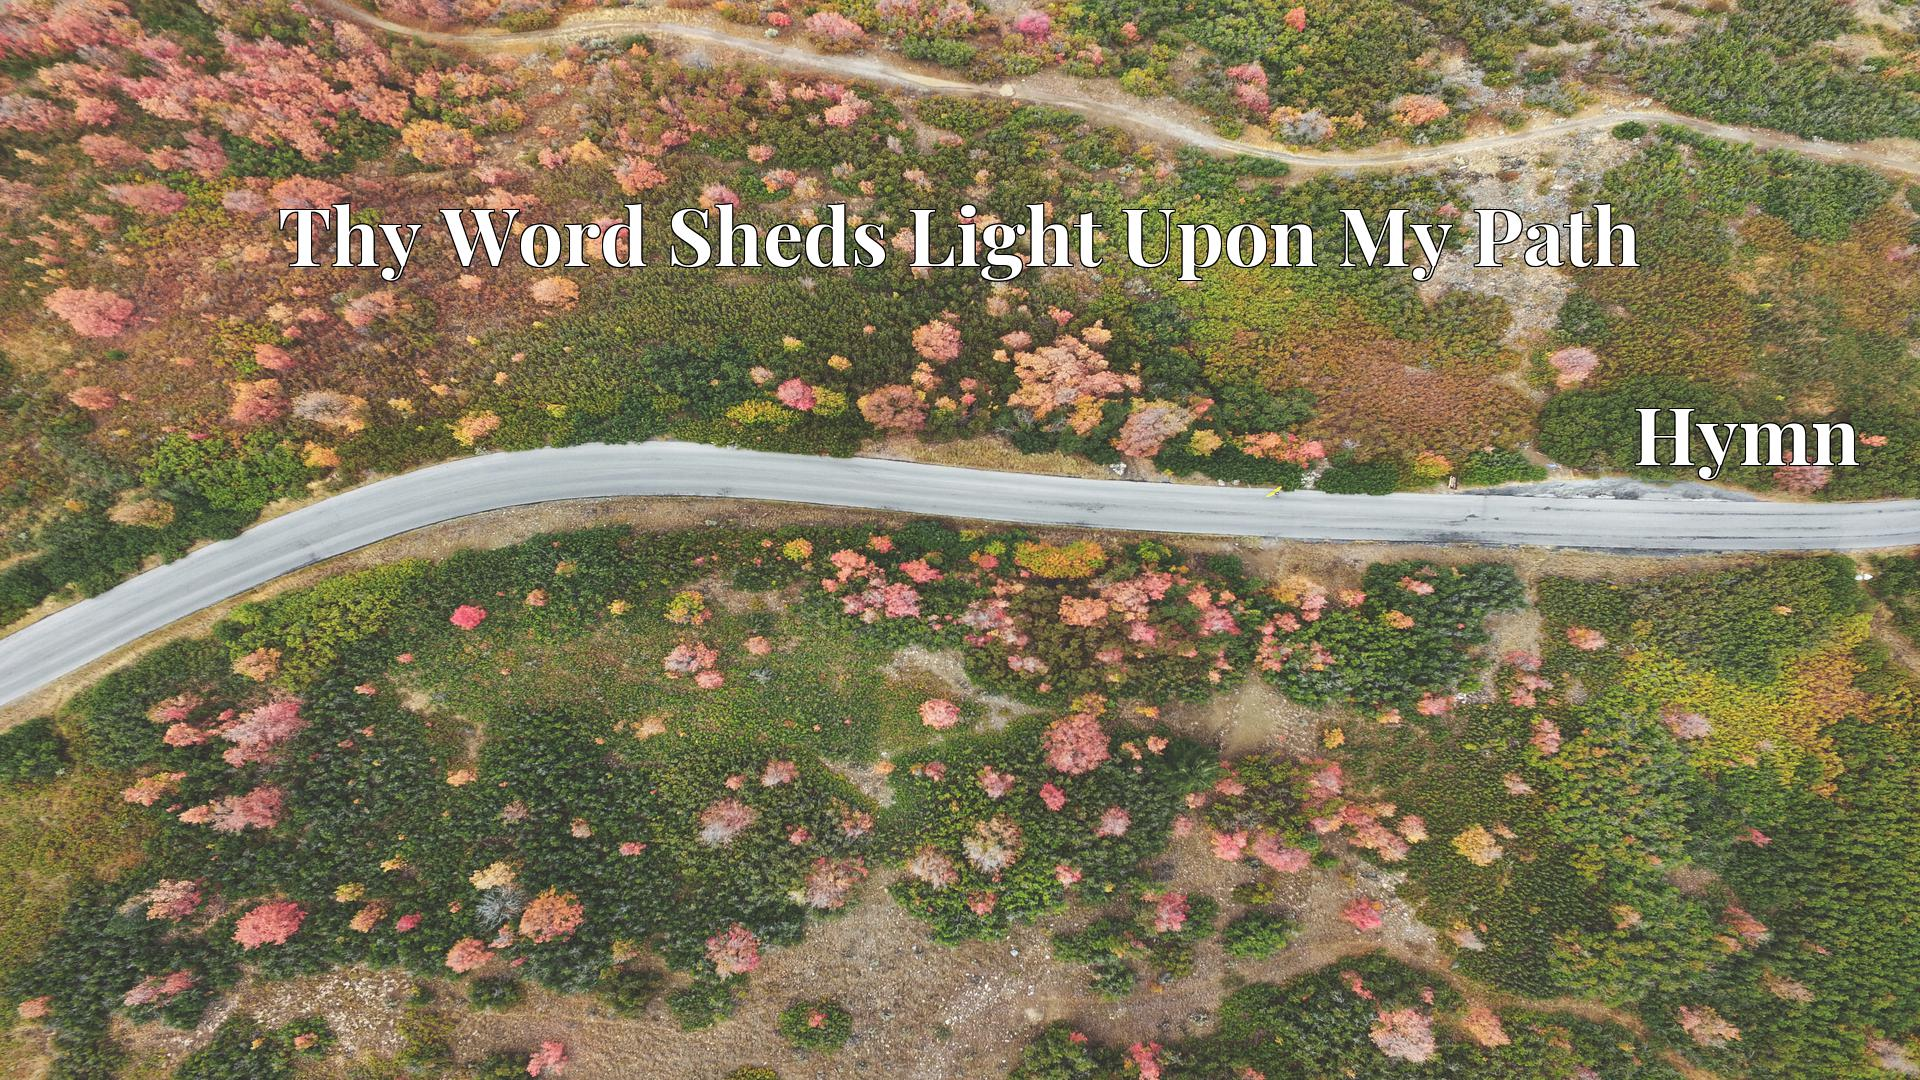 Thy Word Sheds Light Upon My Path - Hymn